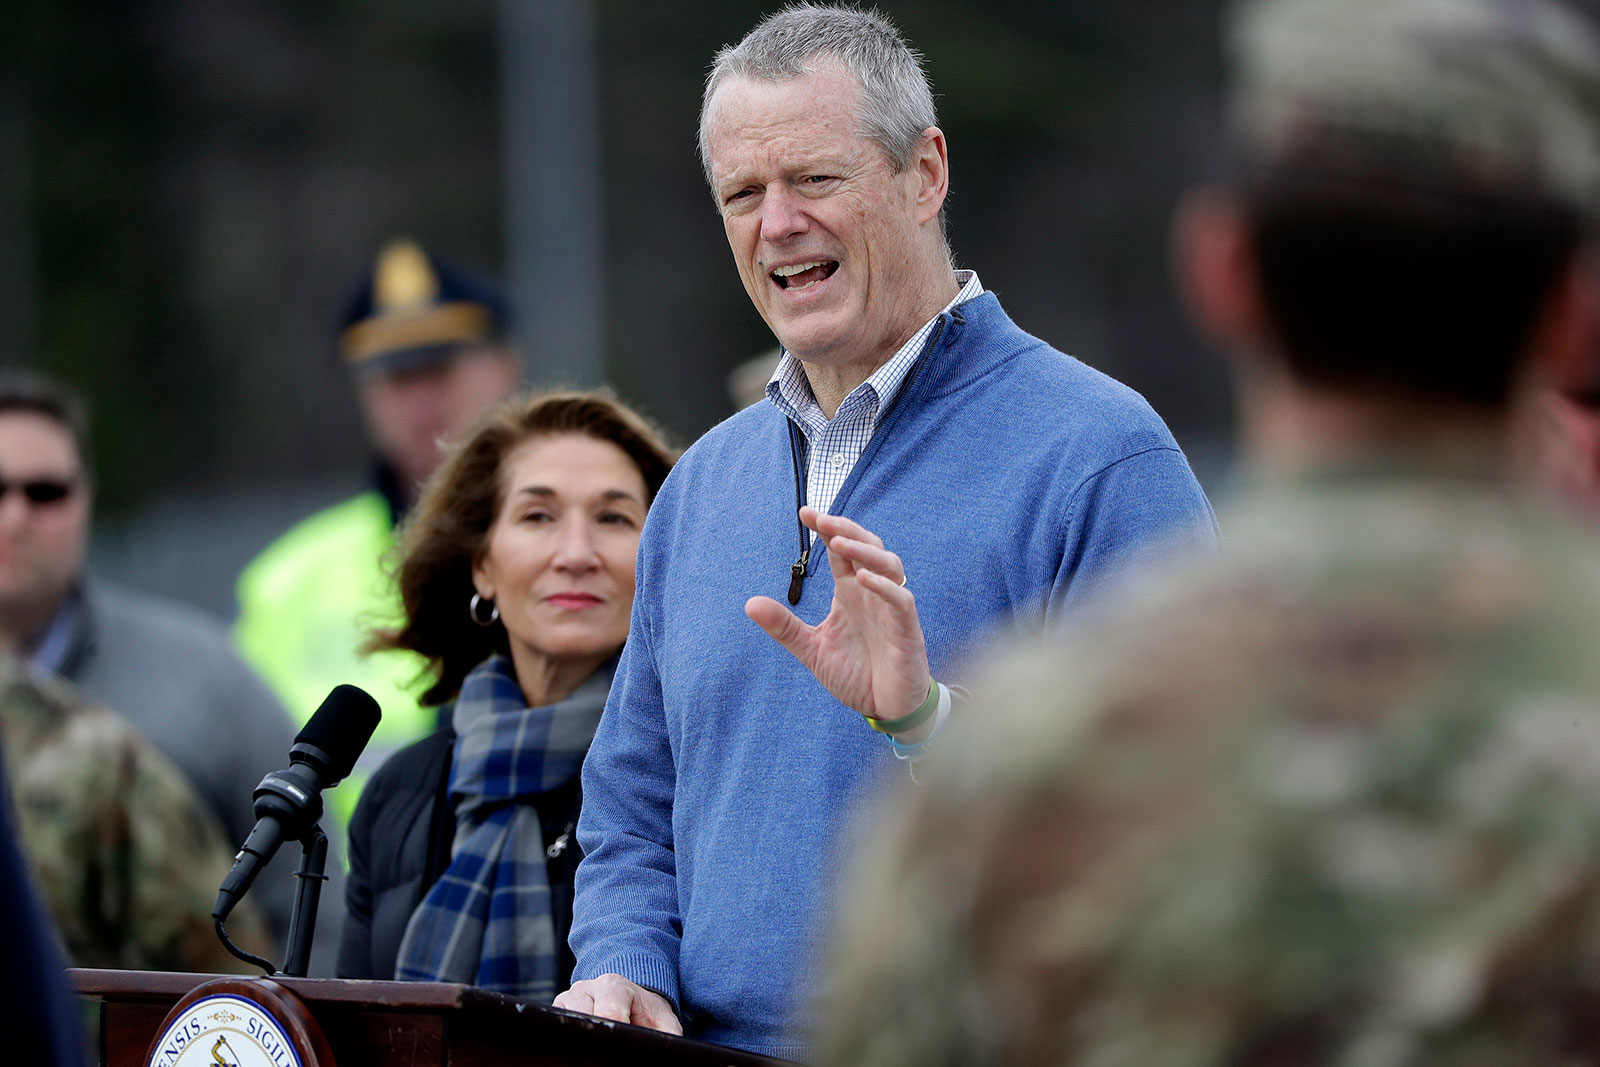 Massachusetts Gov. Charlie Baker speaks to reporters during a press conference last month.